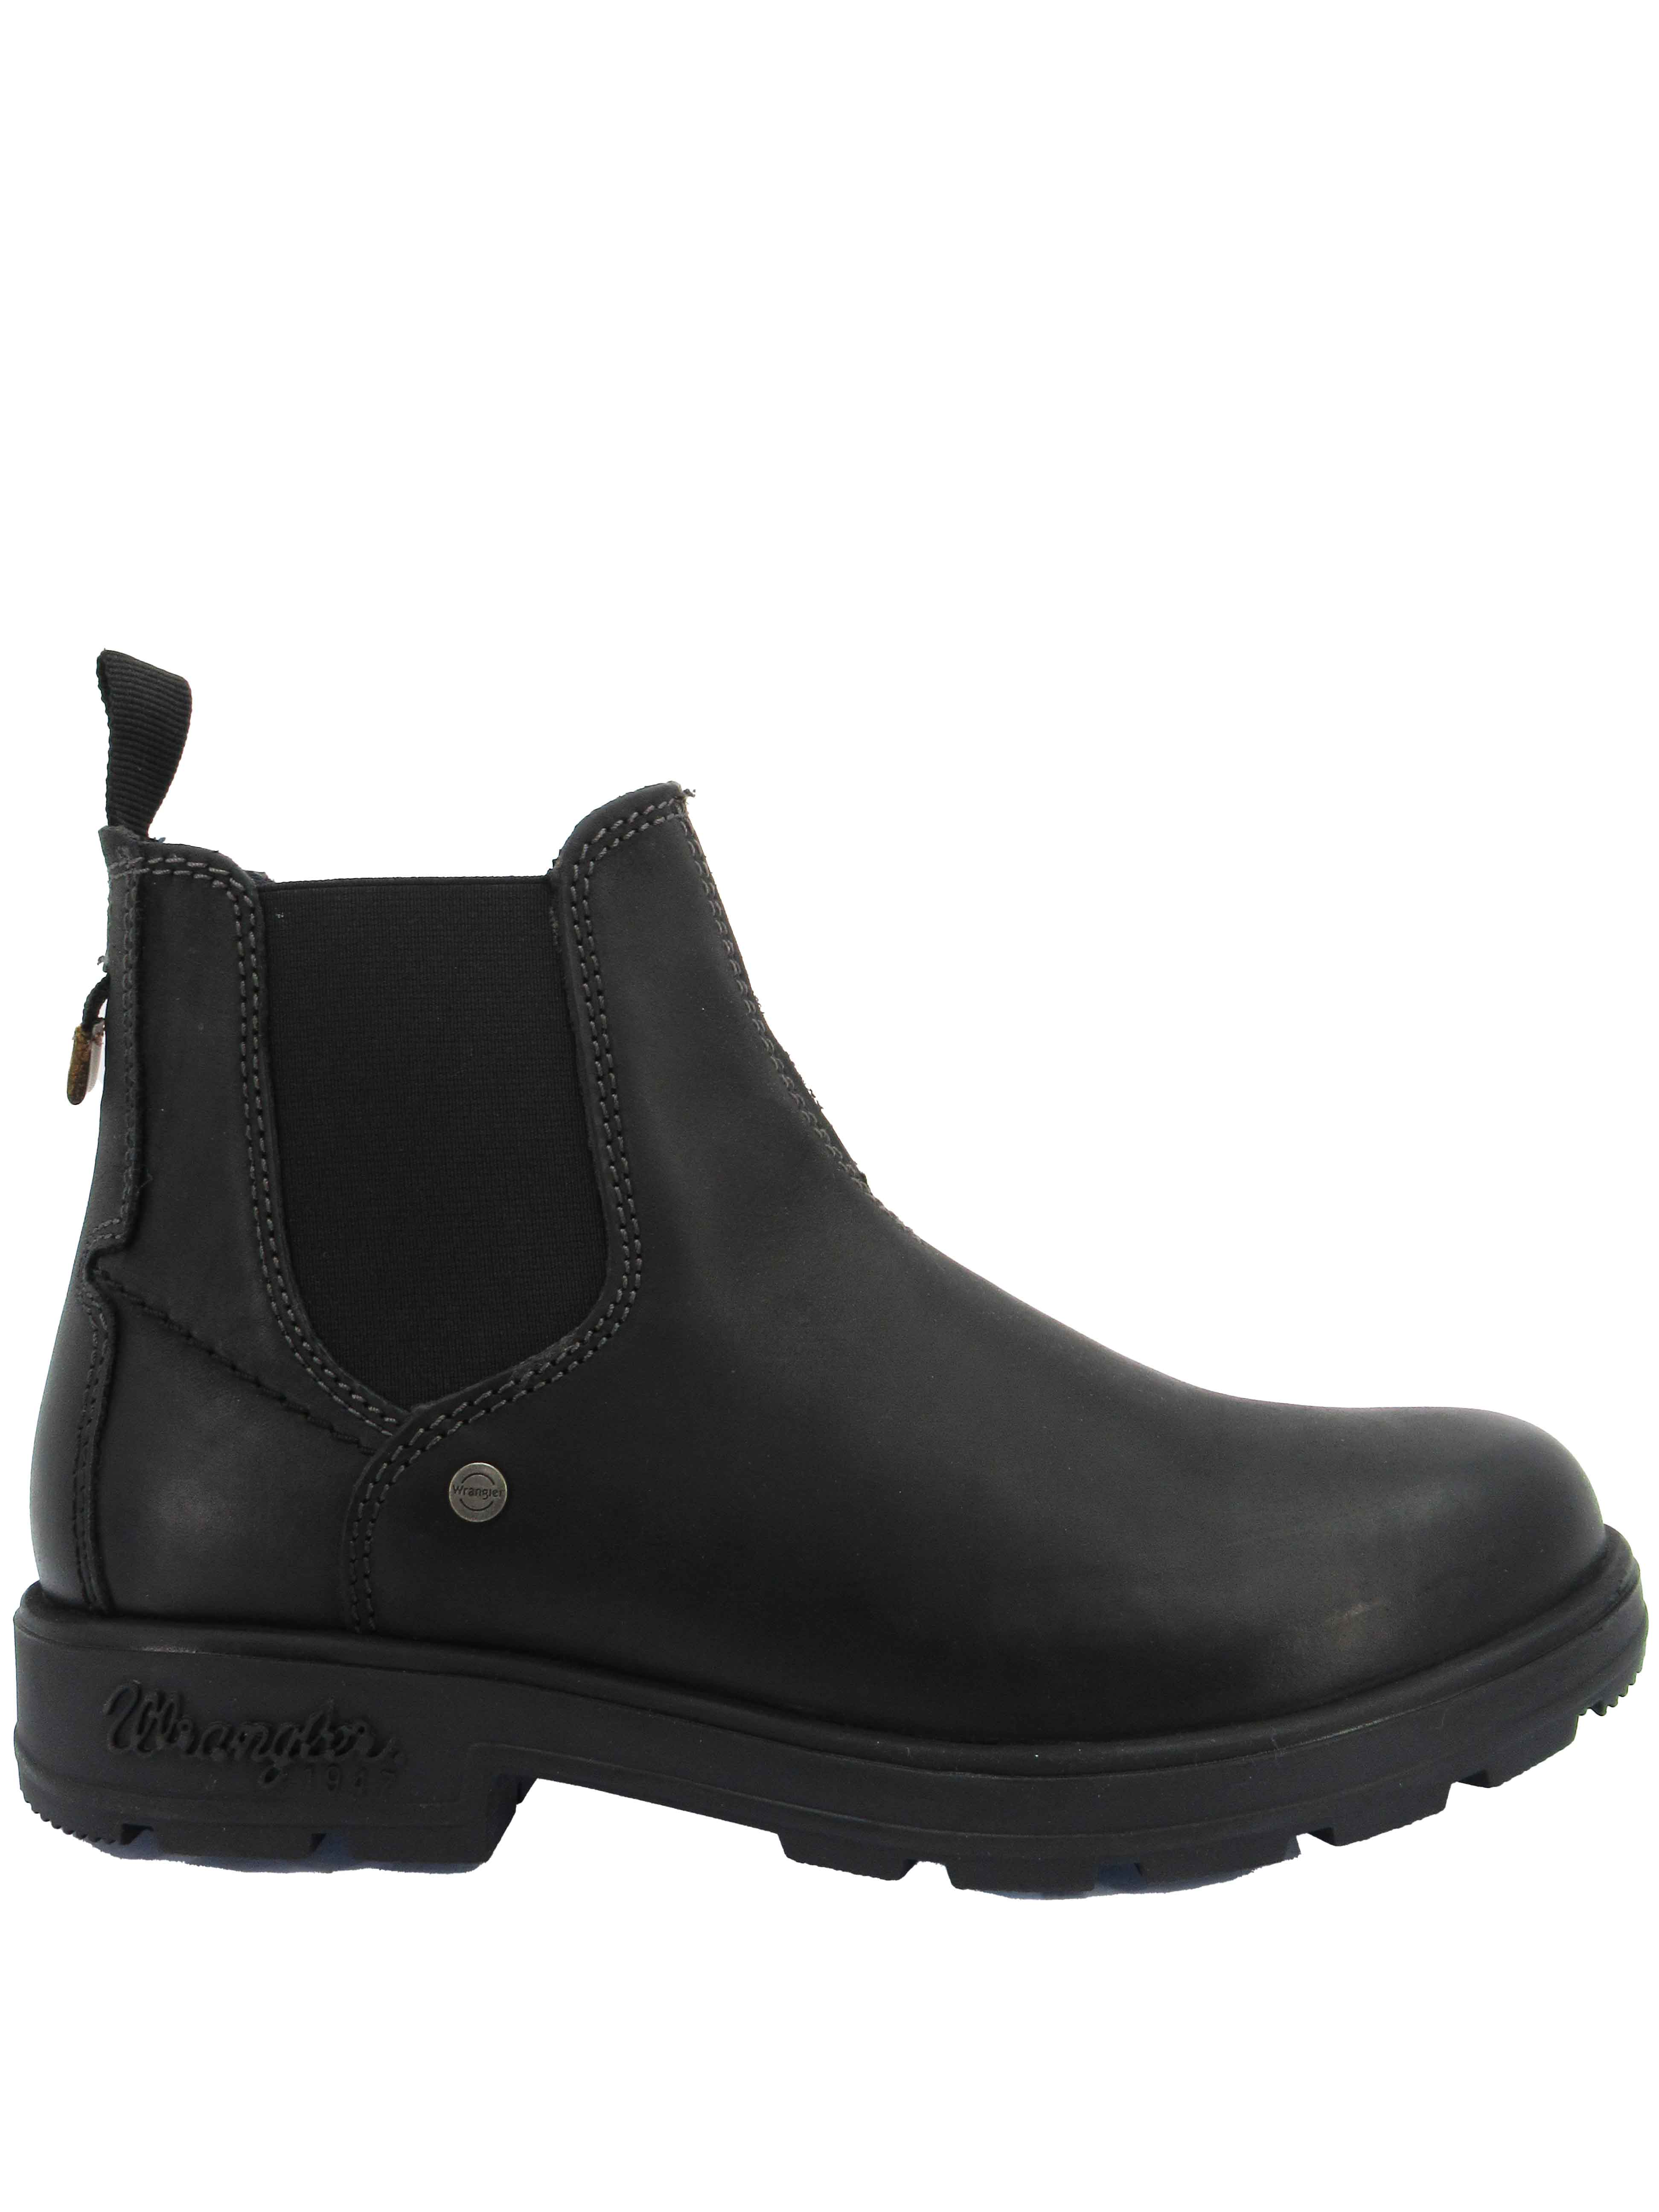 Men's Beatles Buddy Chelsea boots in black leather with rubber sole Wrangler | Ankle Boots | WM12030A296